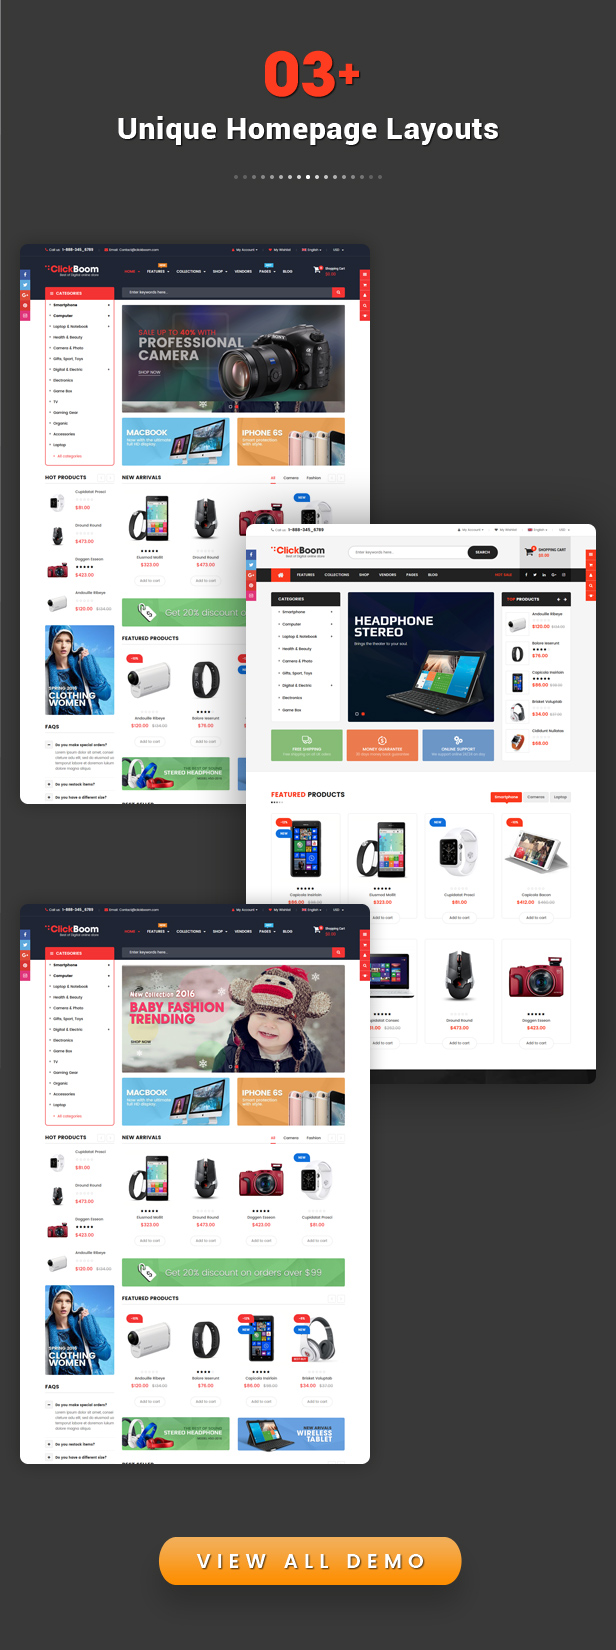 ClickBoom - Responsive Multipurpose Shopify Theme Sections Ready